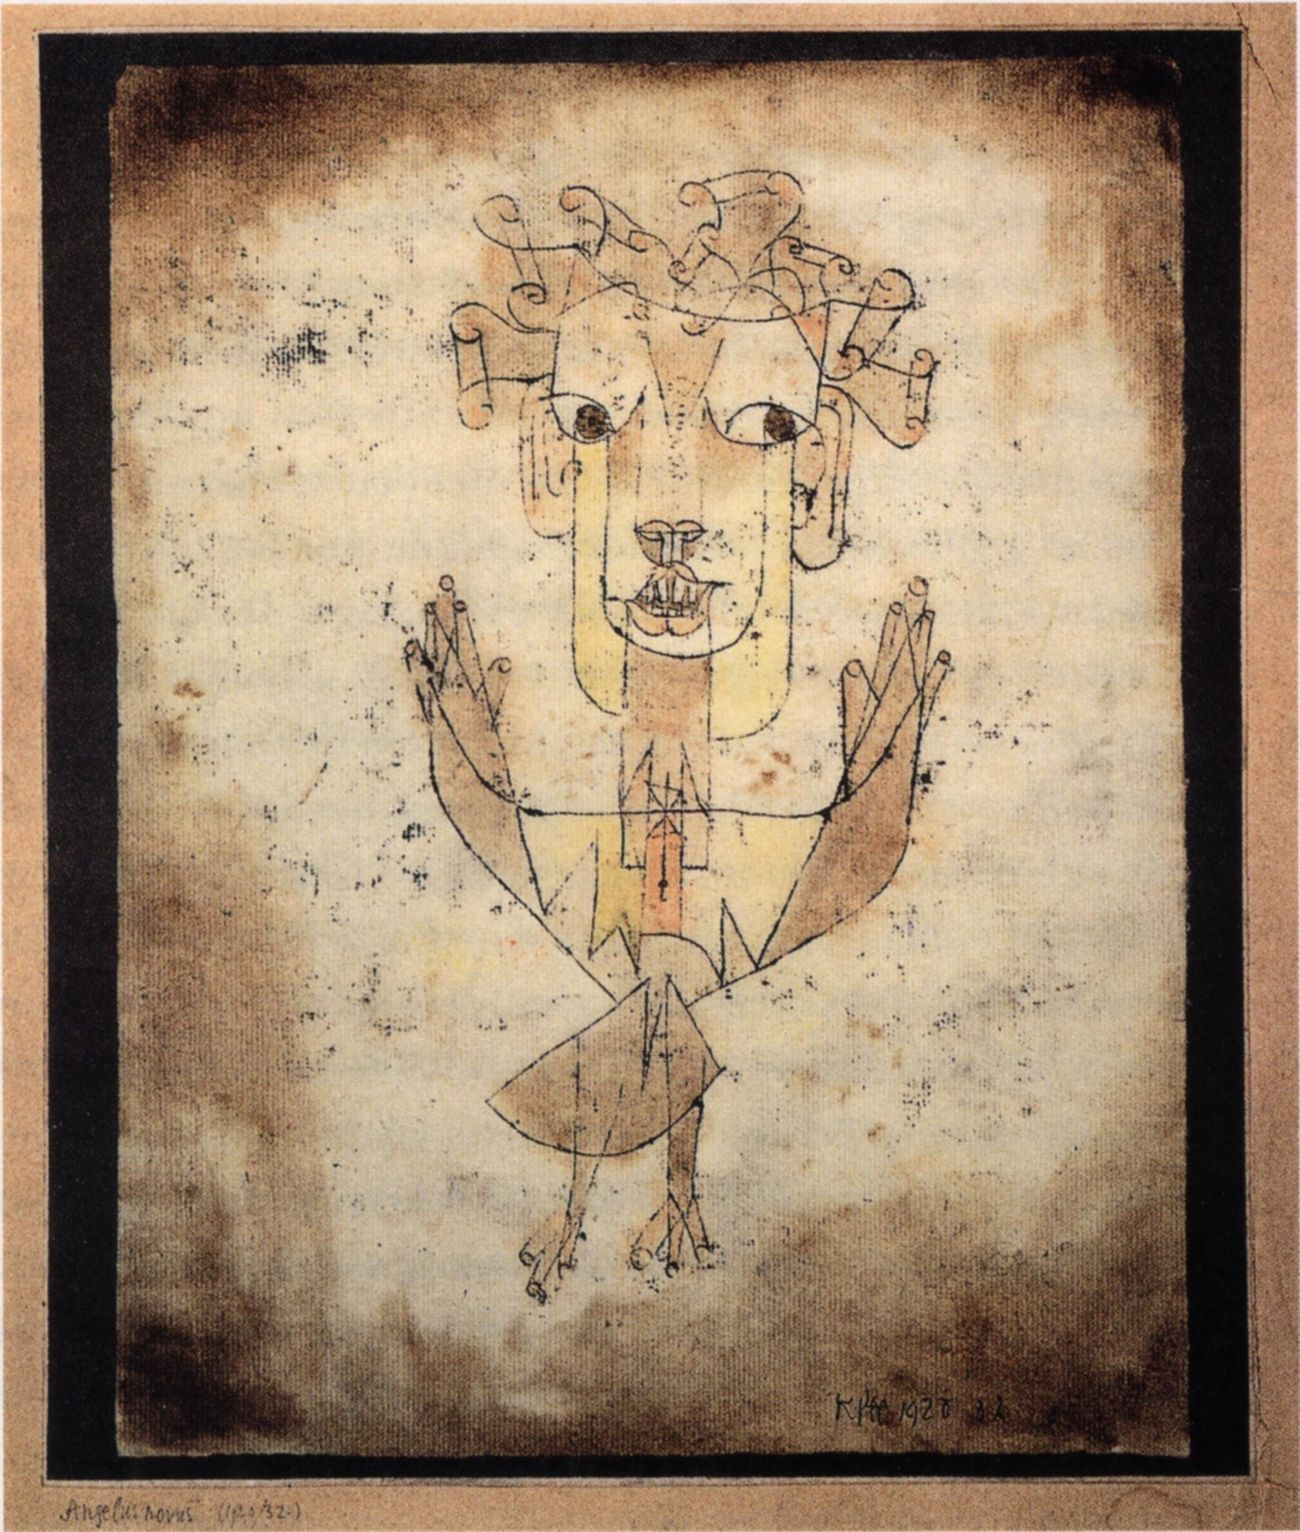 This Paul Klee drawing was Walter Benjamin's favorite — did he understand it?